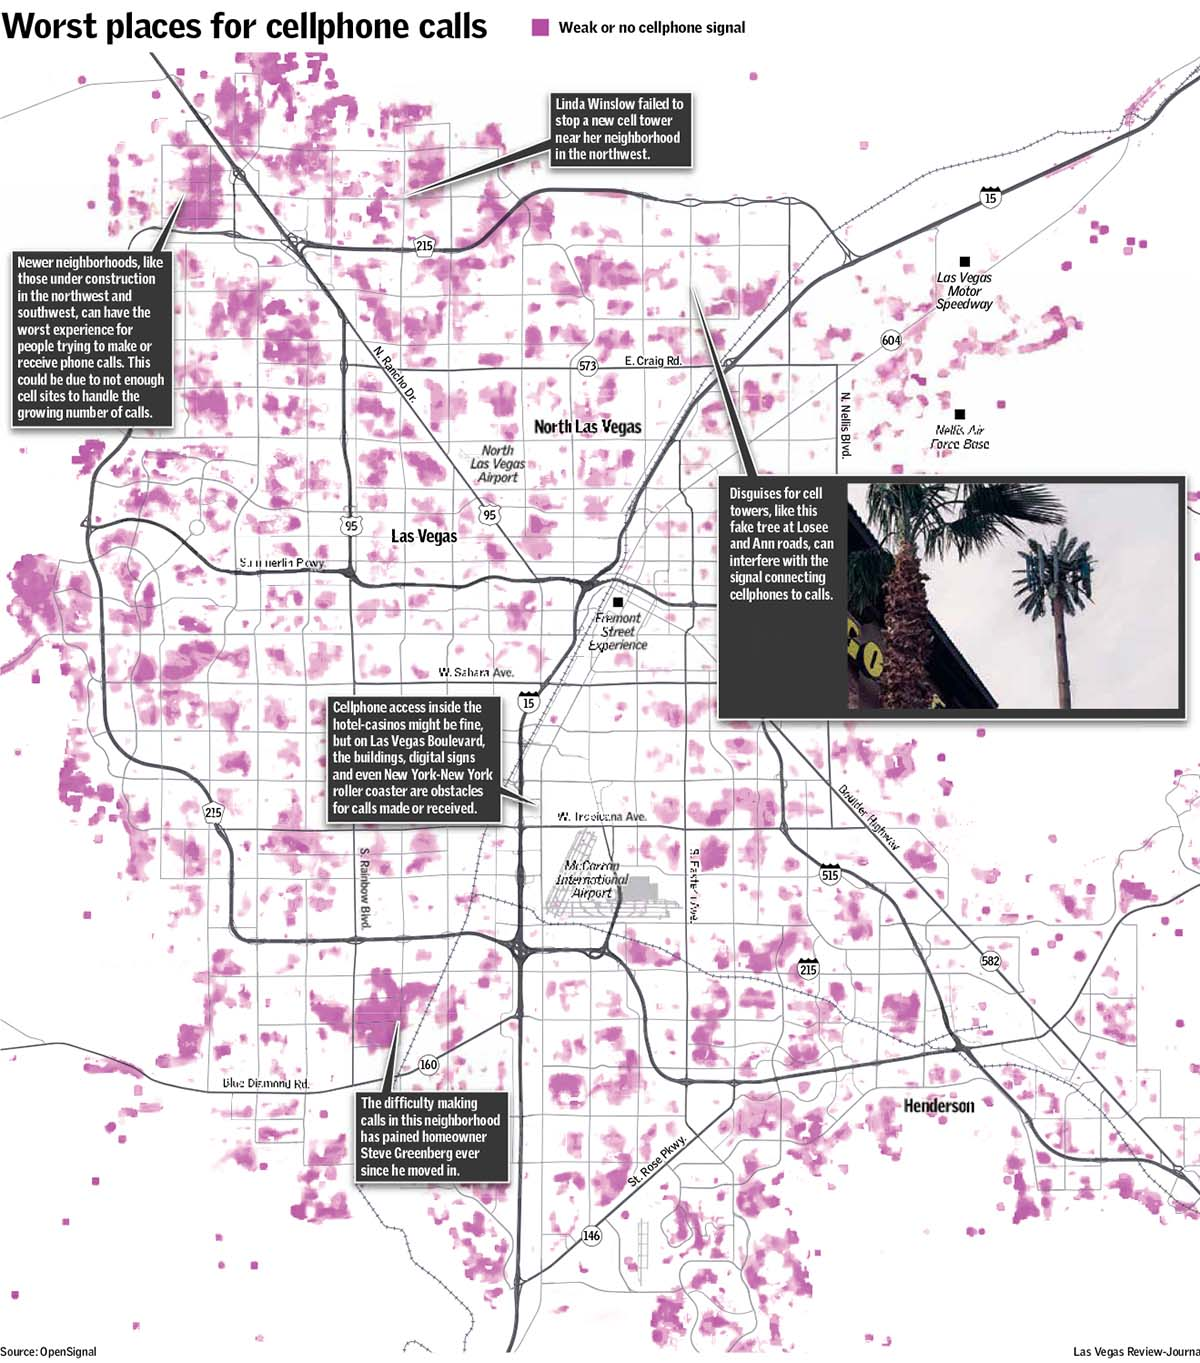 Cell phone signal dead spots Map Las Vegas Review-Journal